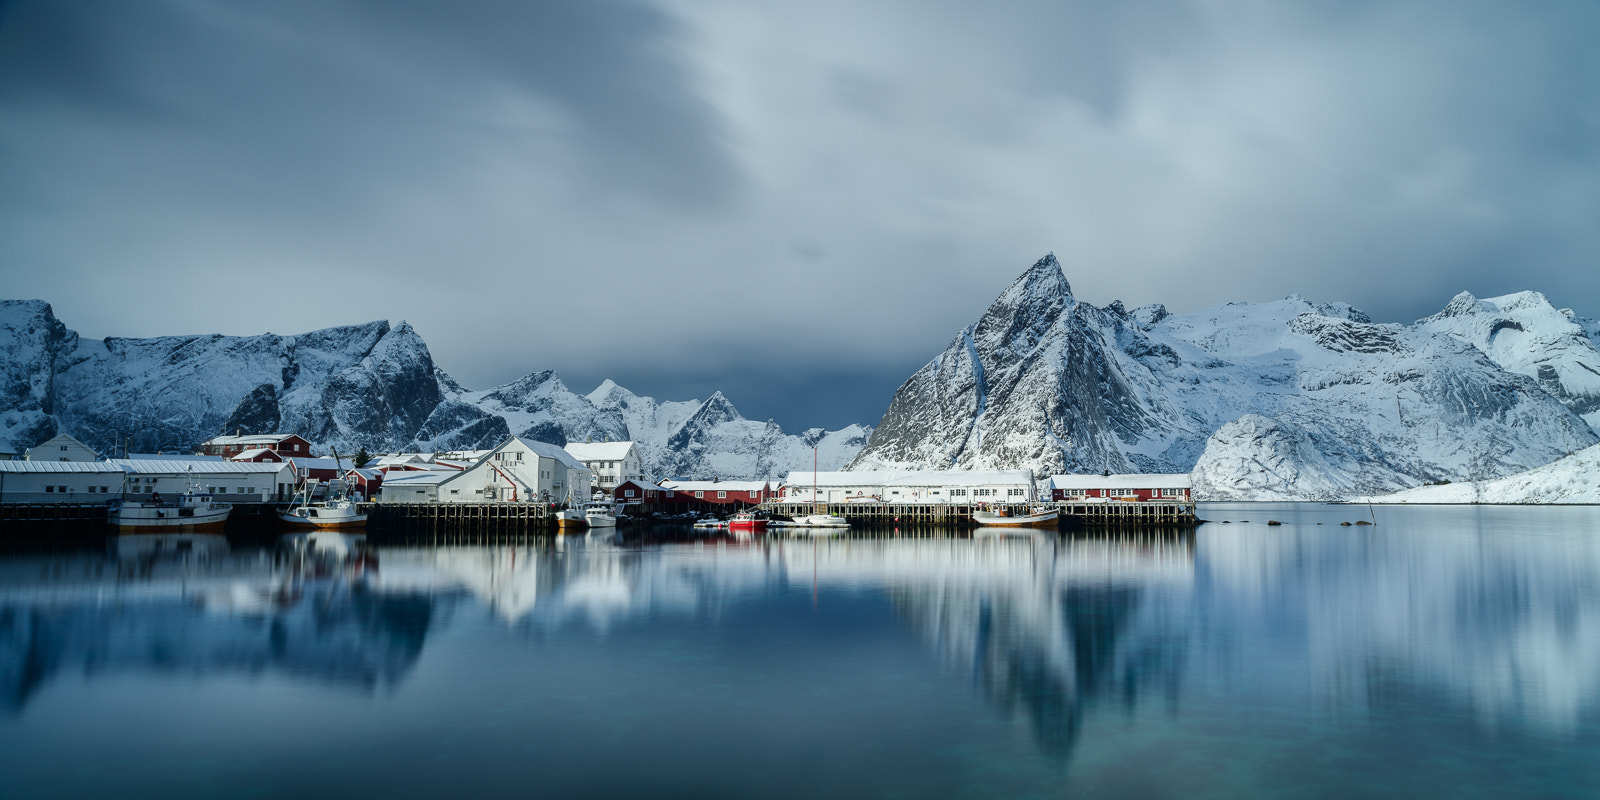 Photograph Hamnøy I by Ajit Menon on 500px